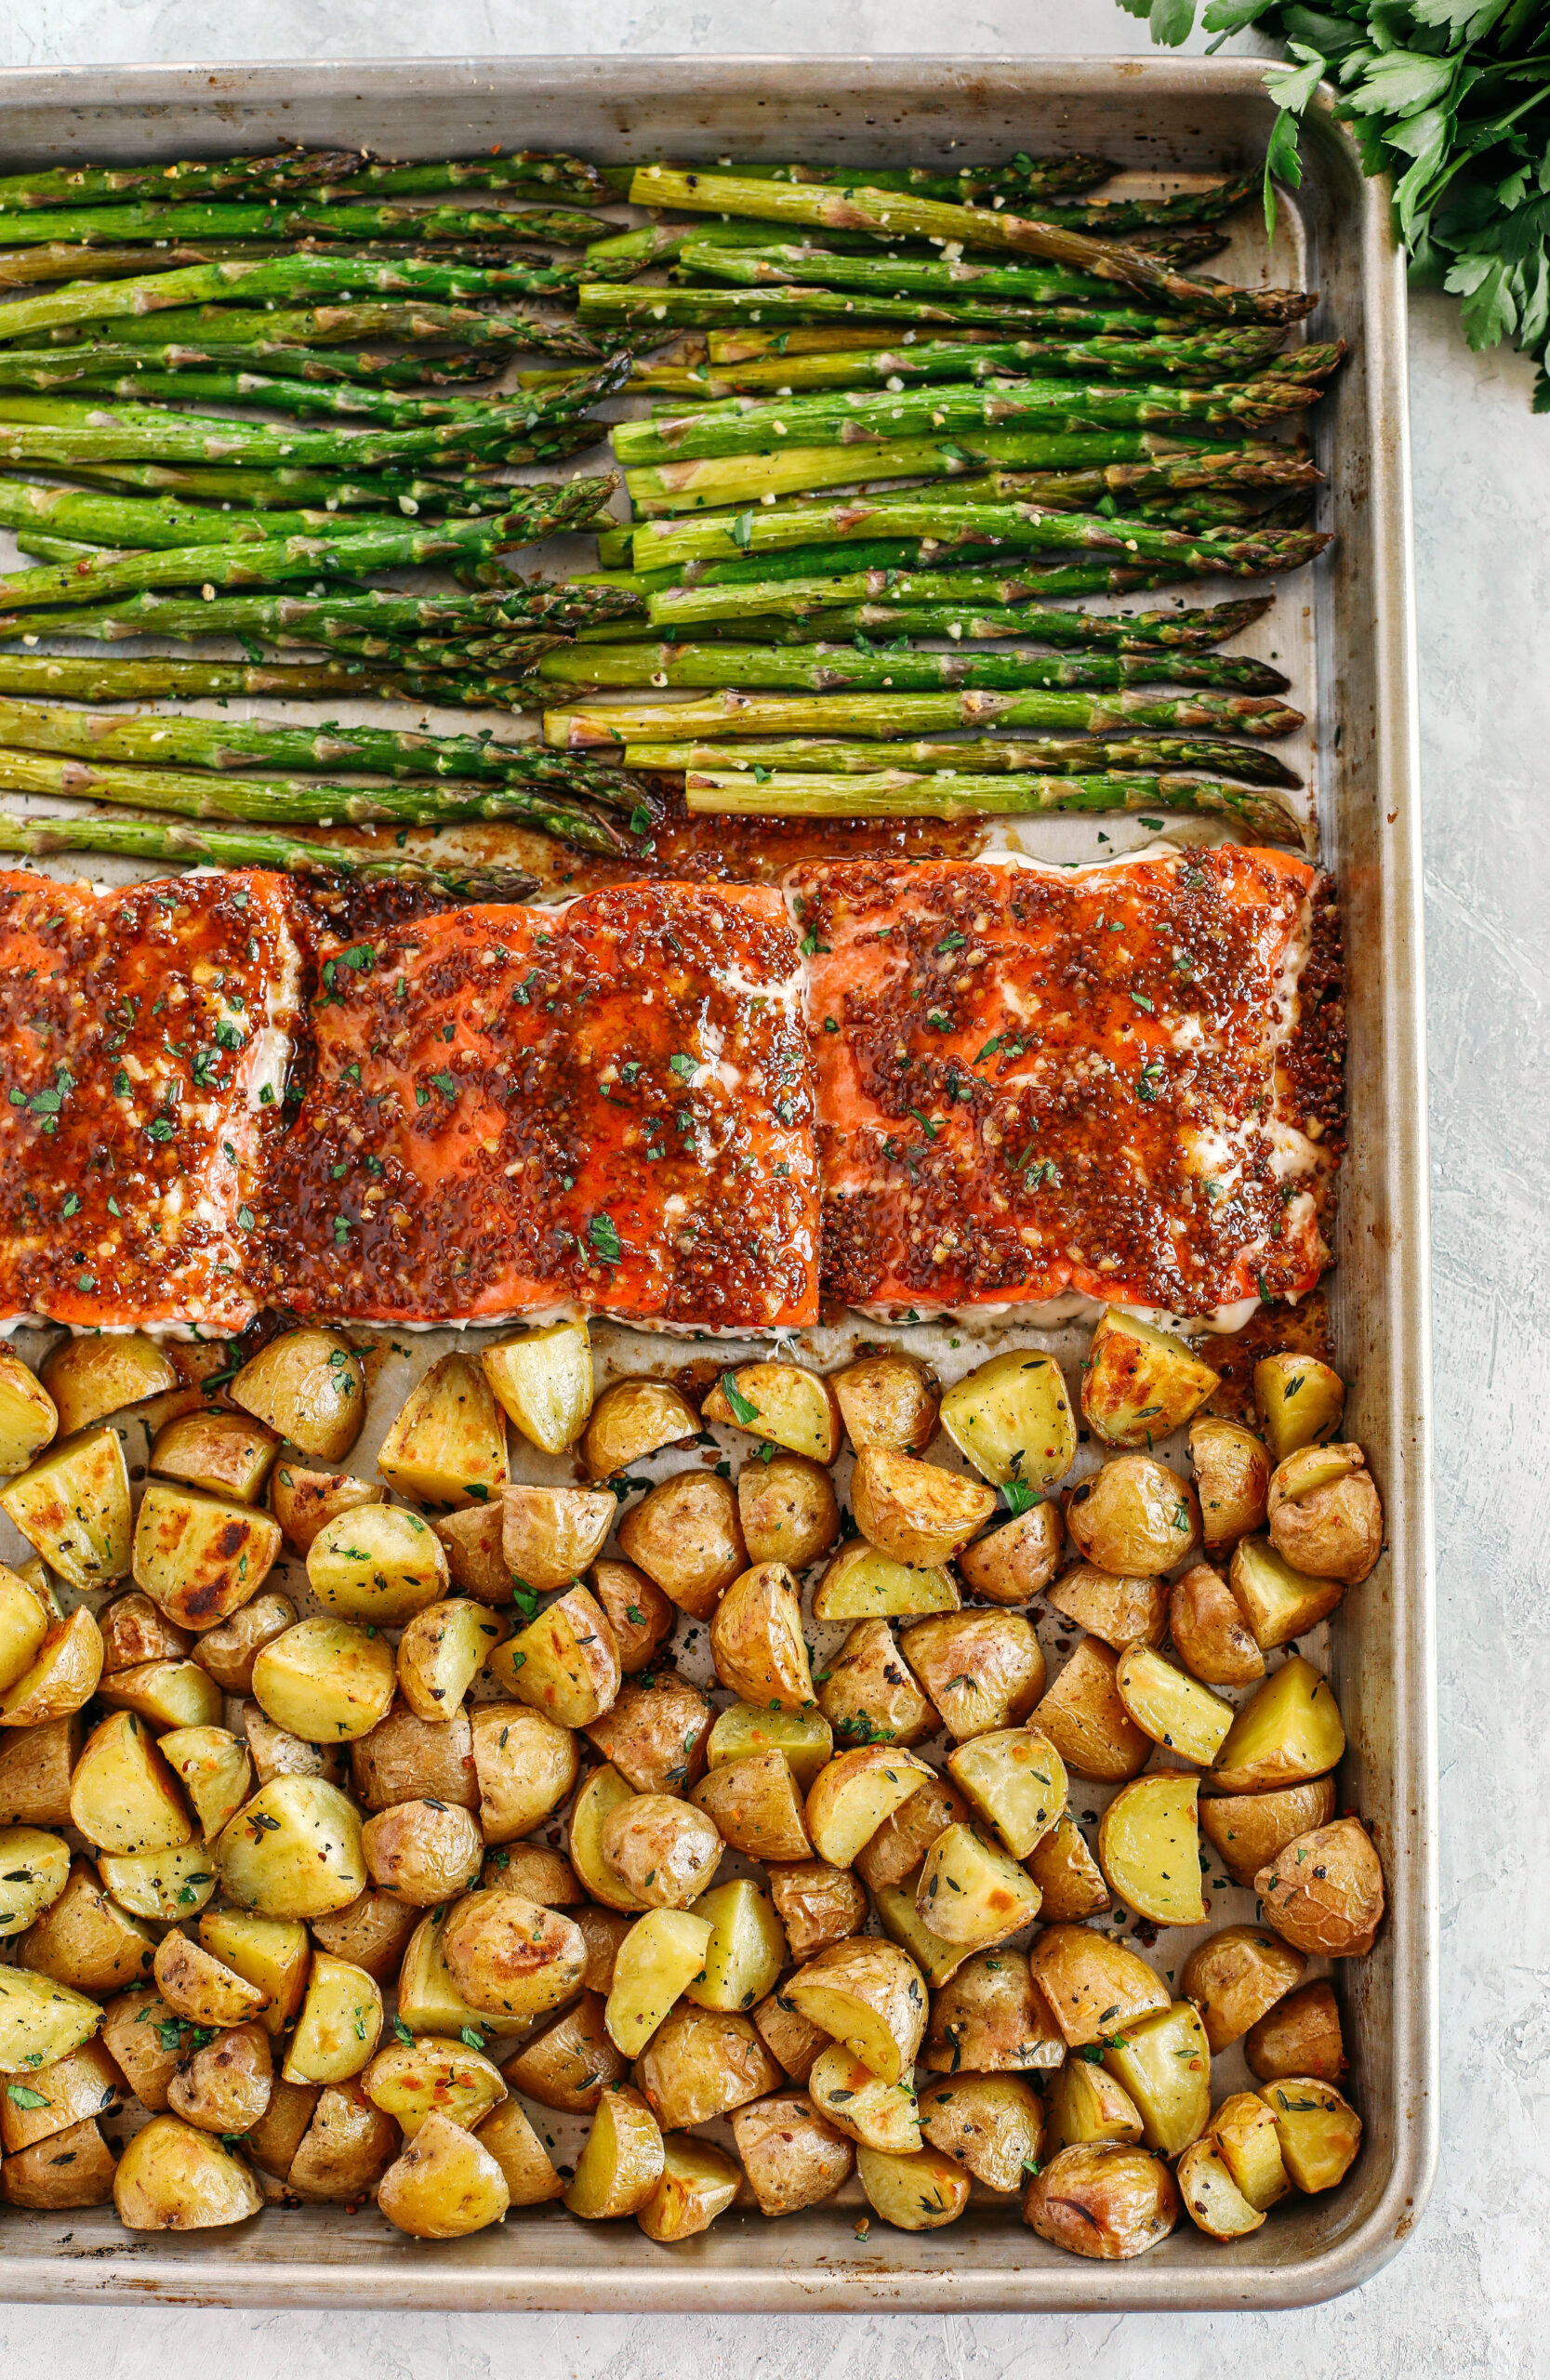 Sheet Pan Maple Dijon Glazed Salmon with roasted asparagus and tender seasoned potatoes make the perfect weeknight dinner that is easily made all in one pan in just 30 minutes!